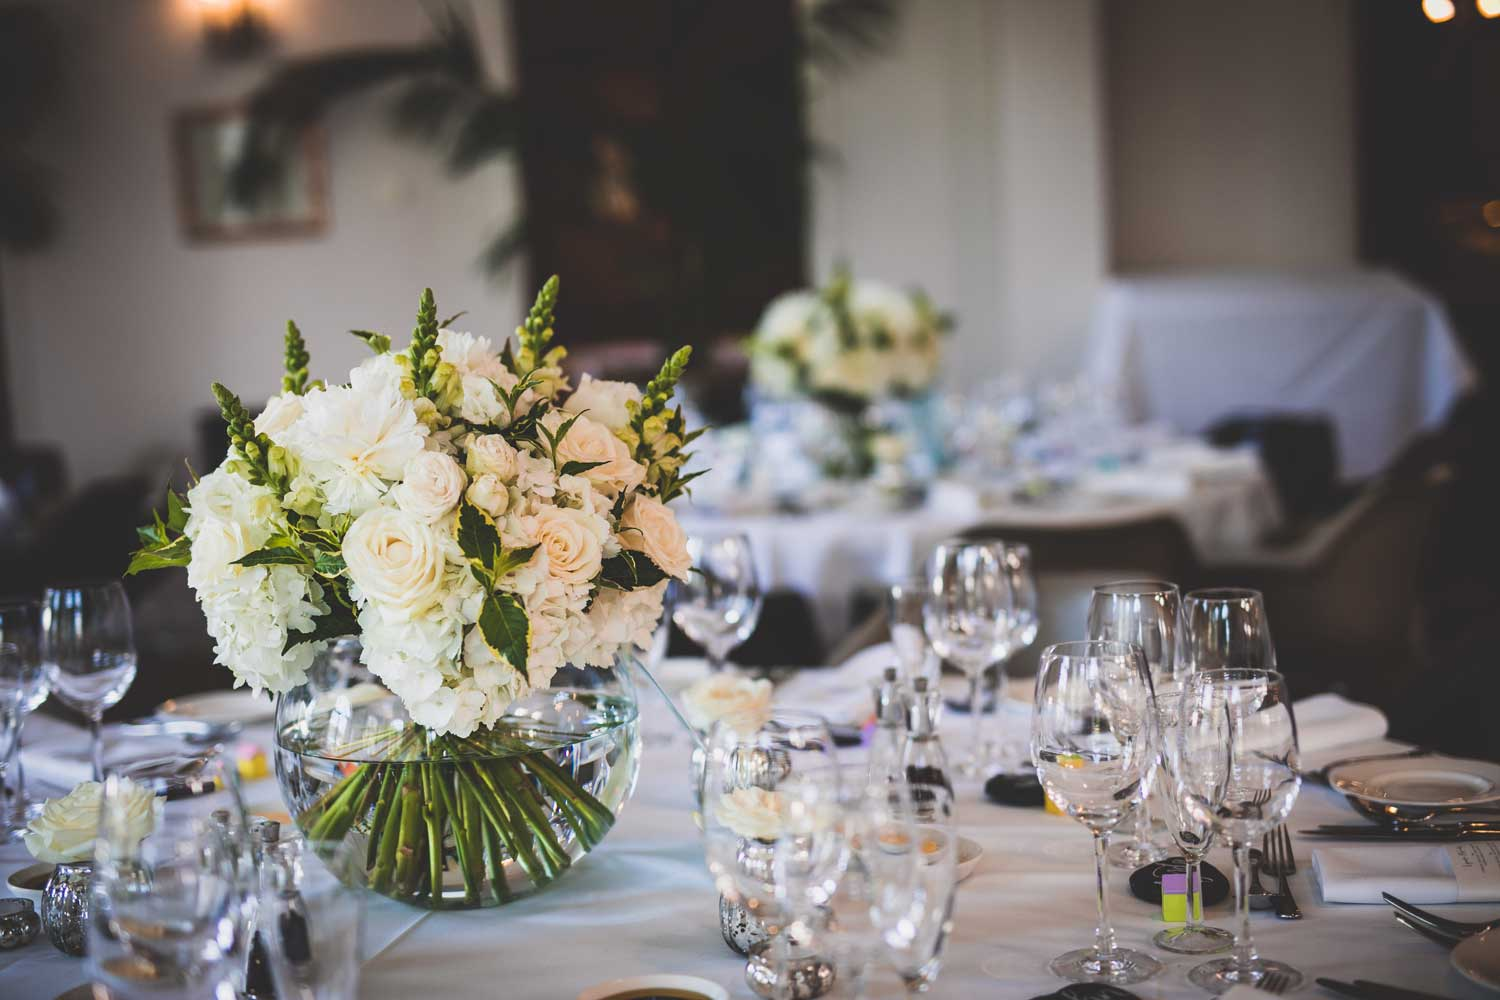 Classic-modern-wedding-with-white-and-greeen-flowers-and-glassware